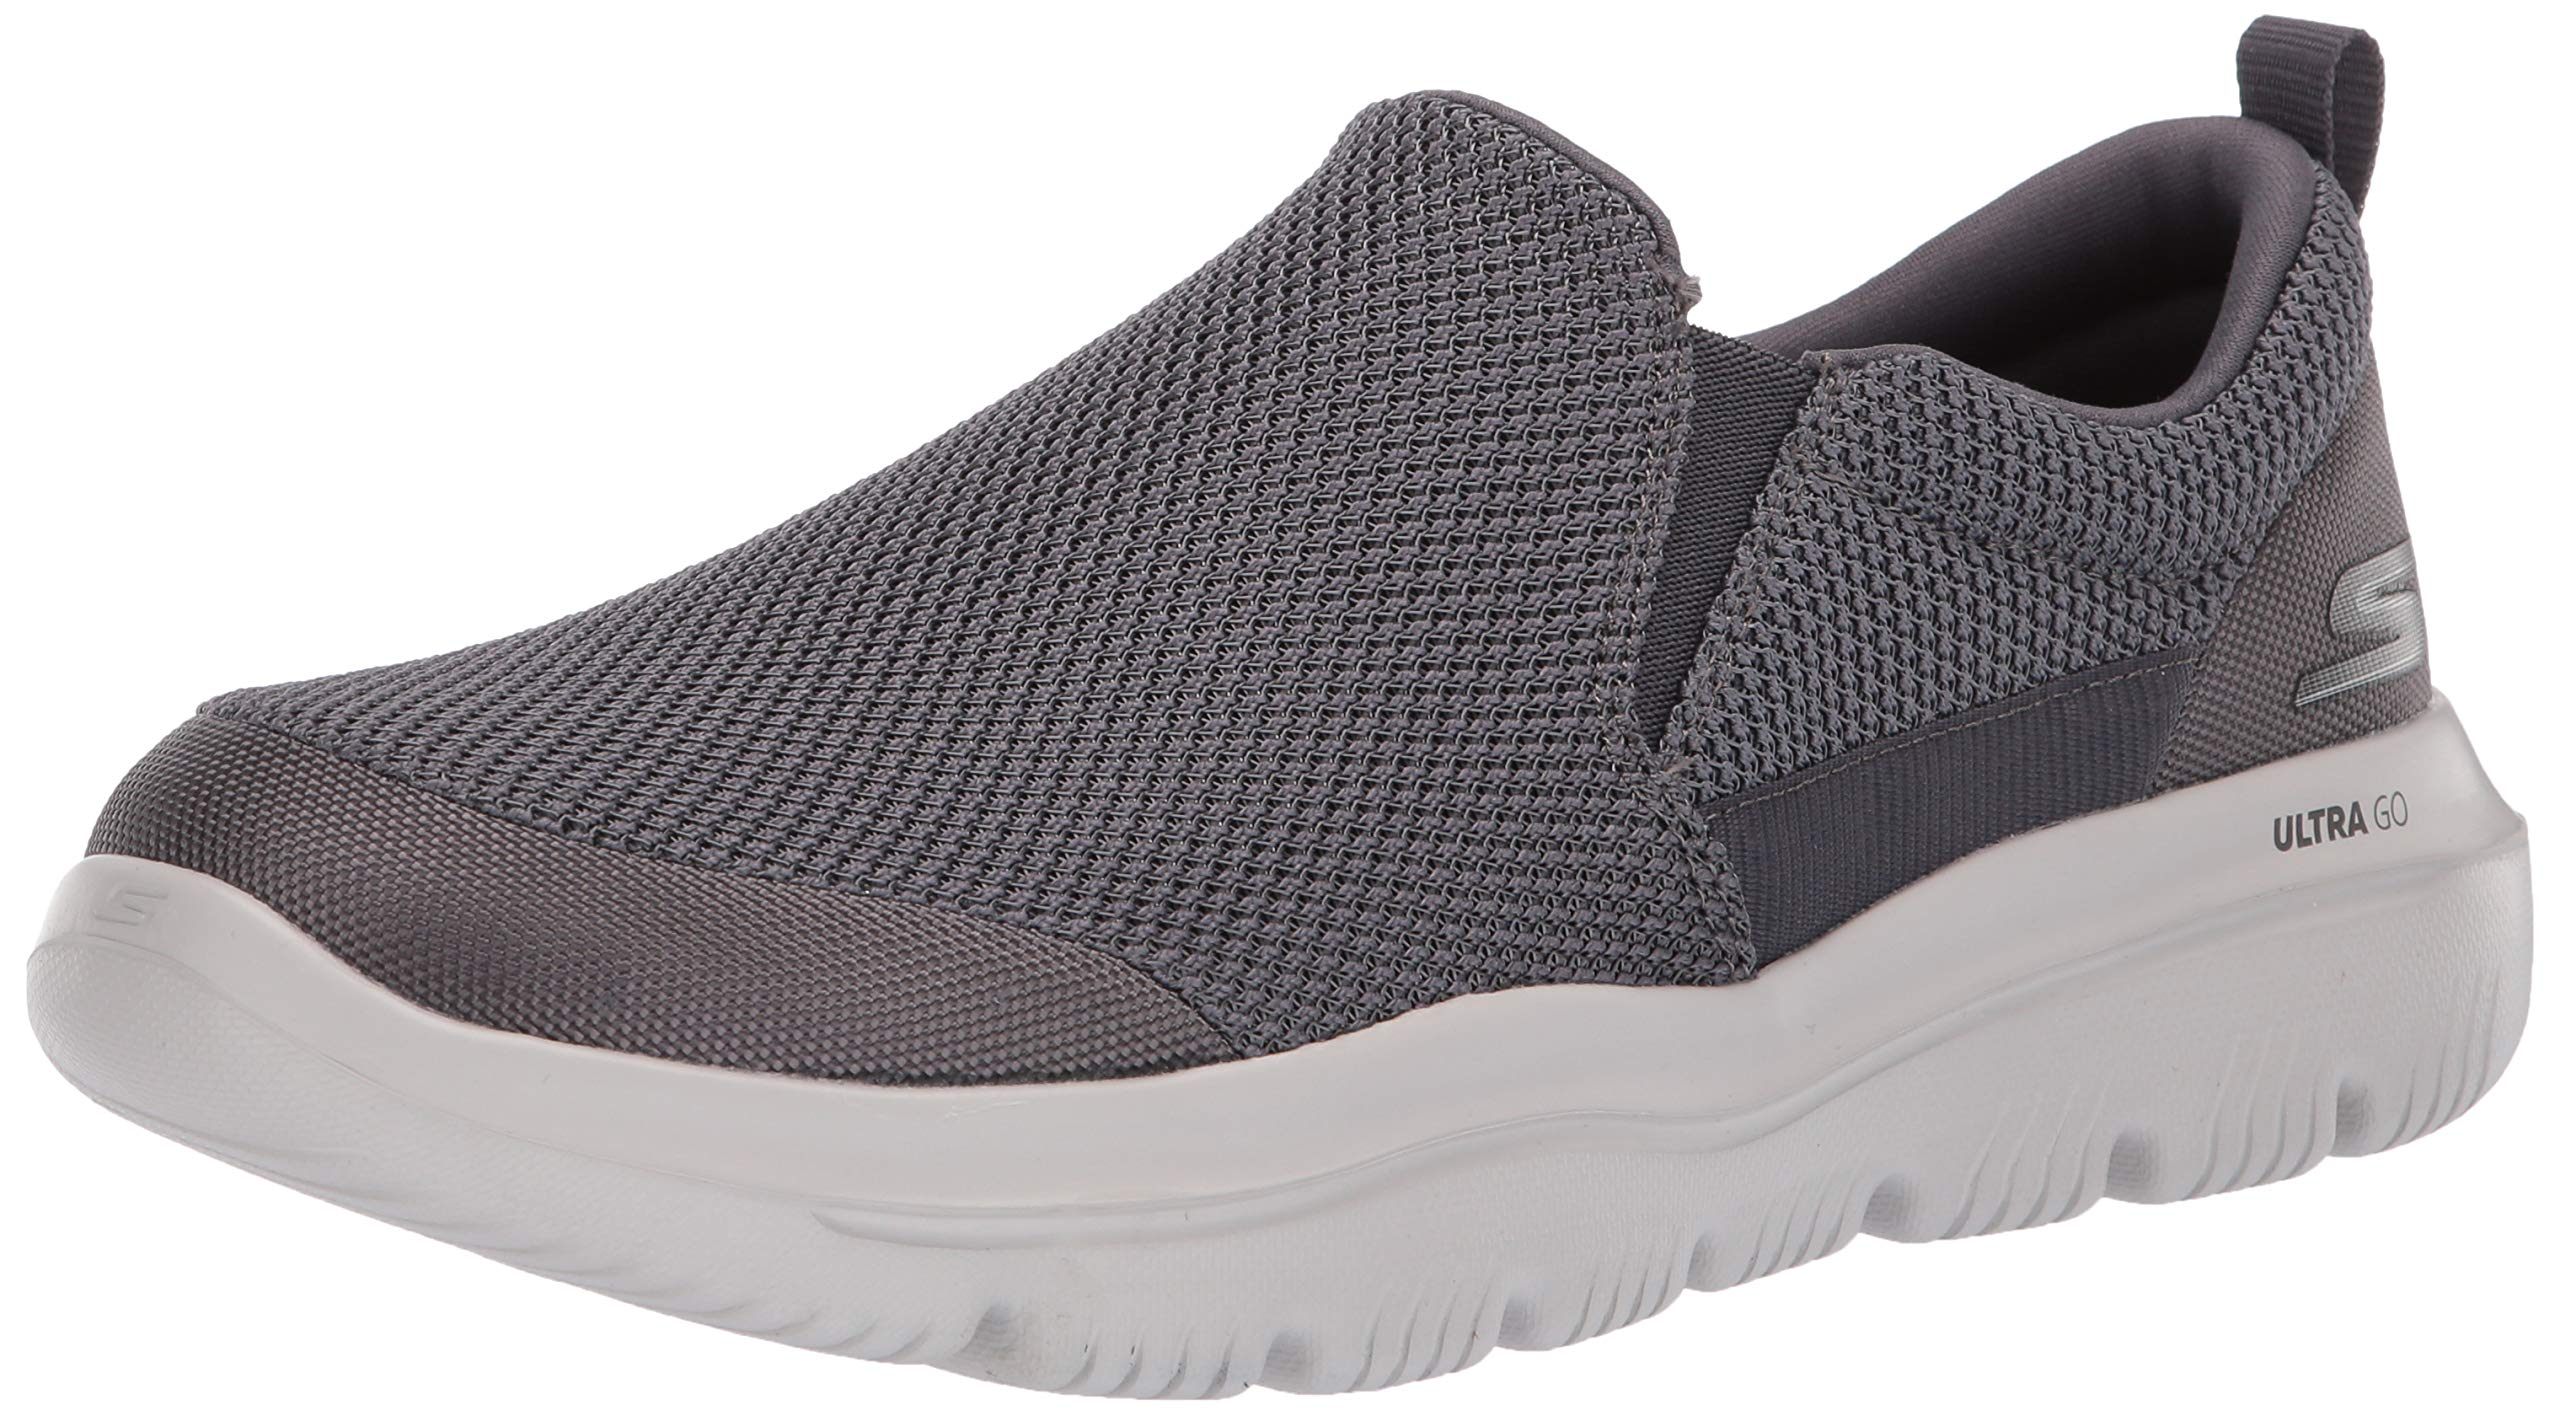 Skechers Men's GO Walk Evolution Ultra-Impeccable Sneaker, Charcoal, 11 Extra Wide US